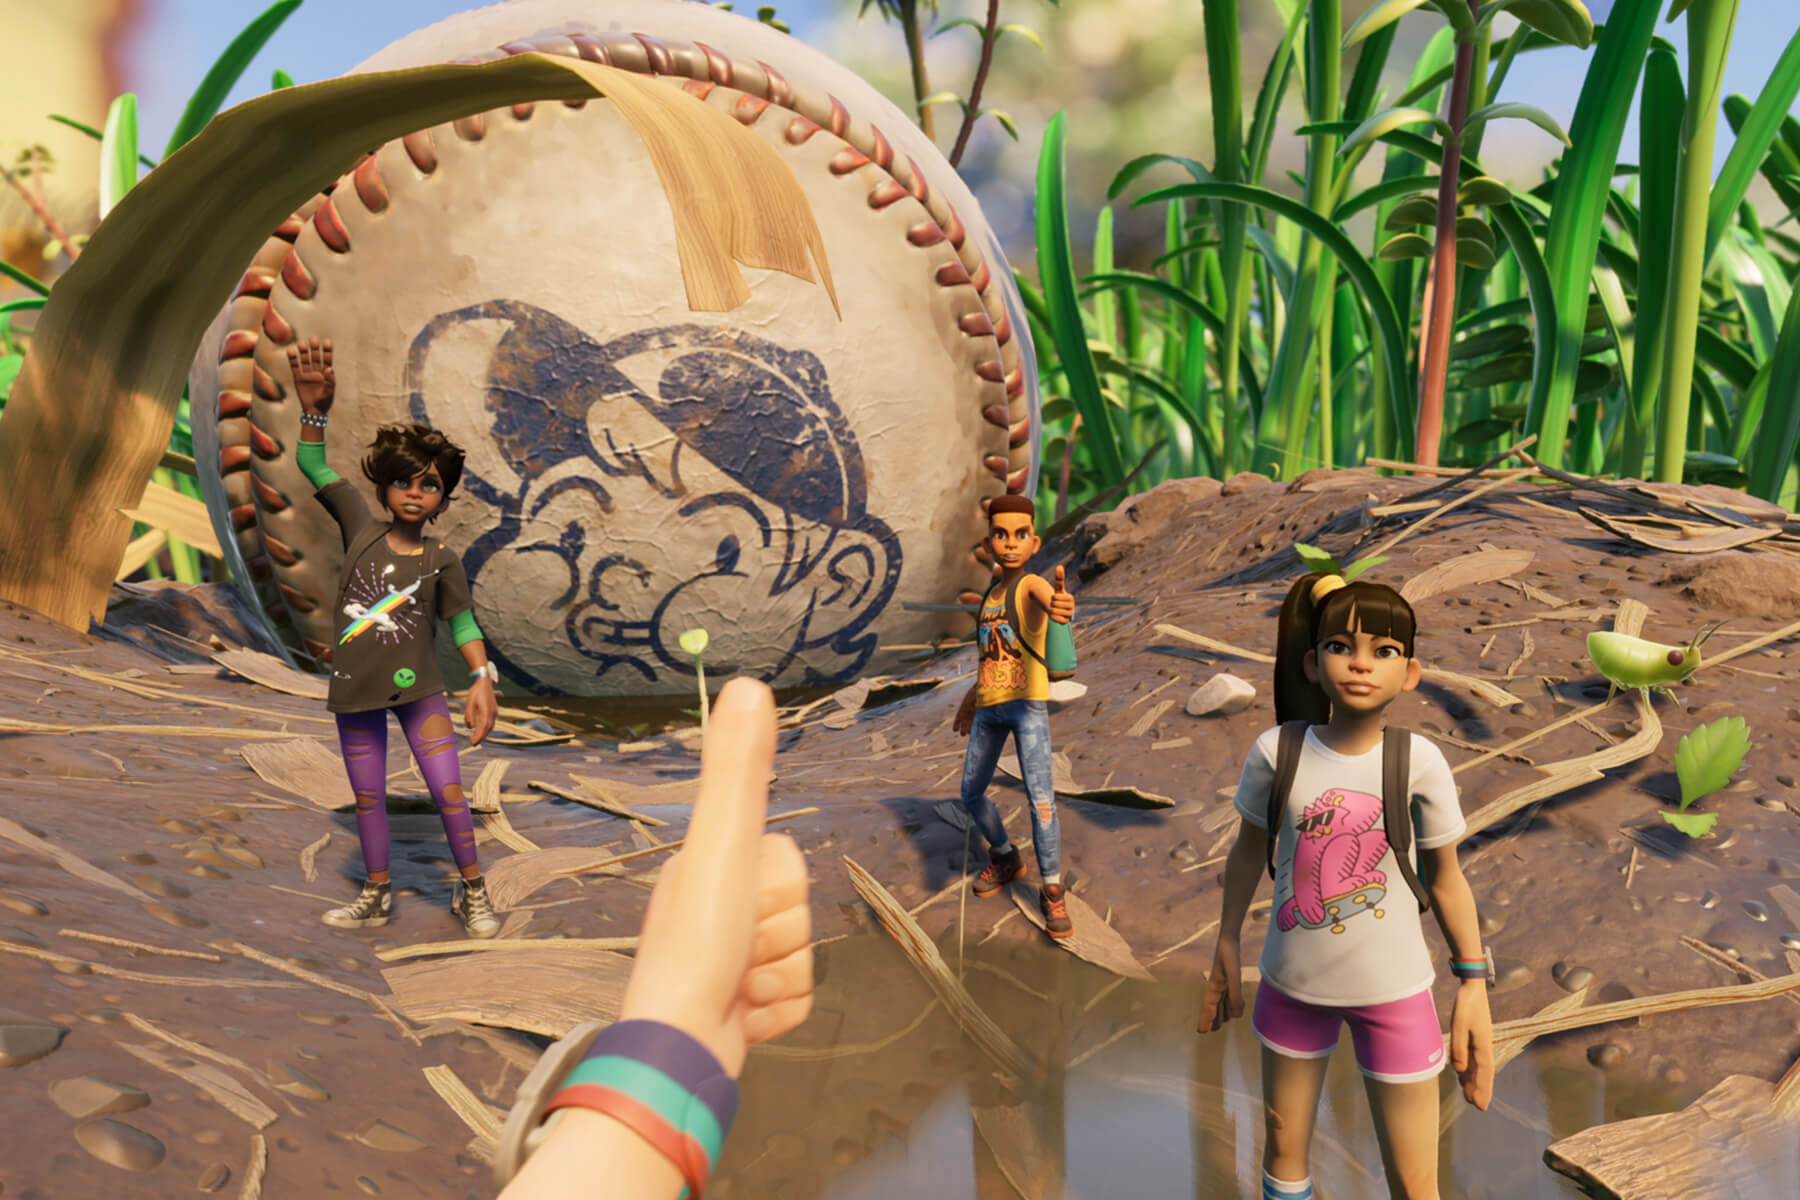 A Grounded screenshot showing the player giving the thumbs up to three tiny teens standing in front of a huge baseball.